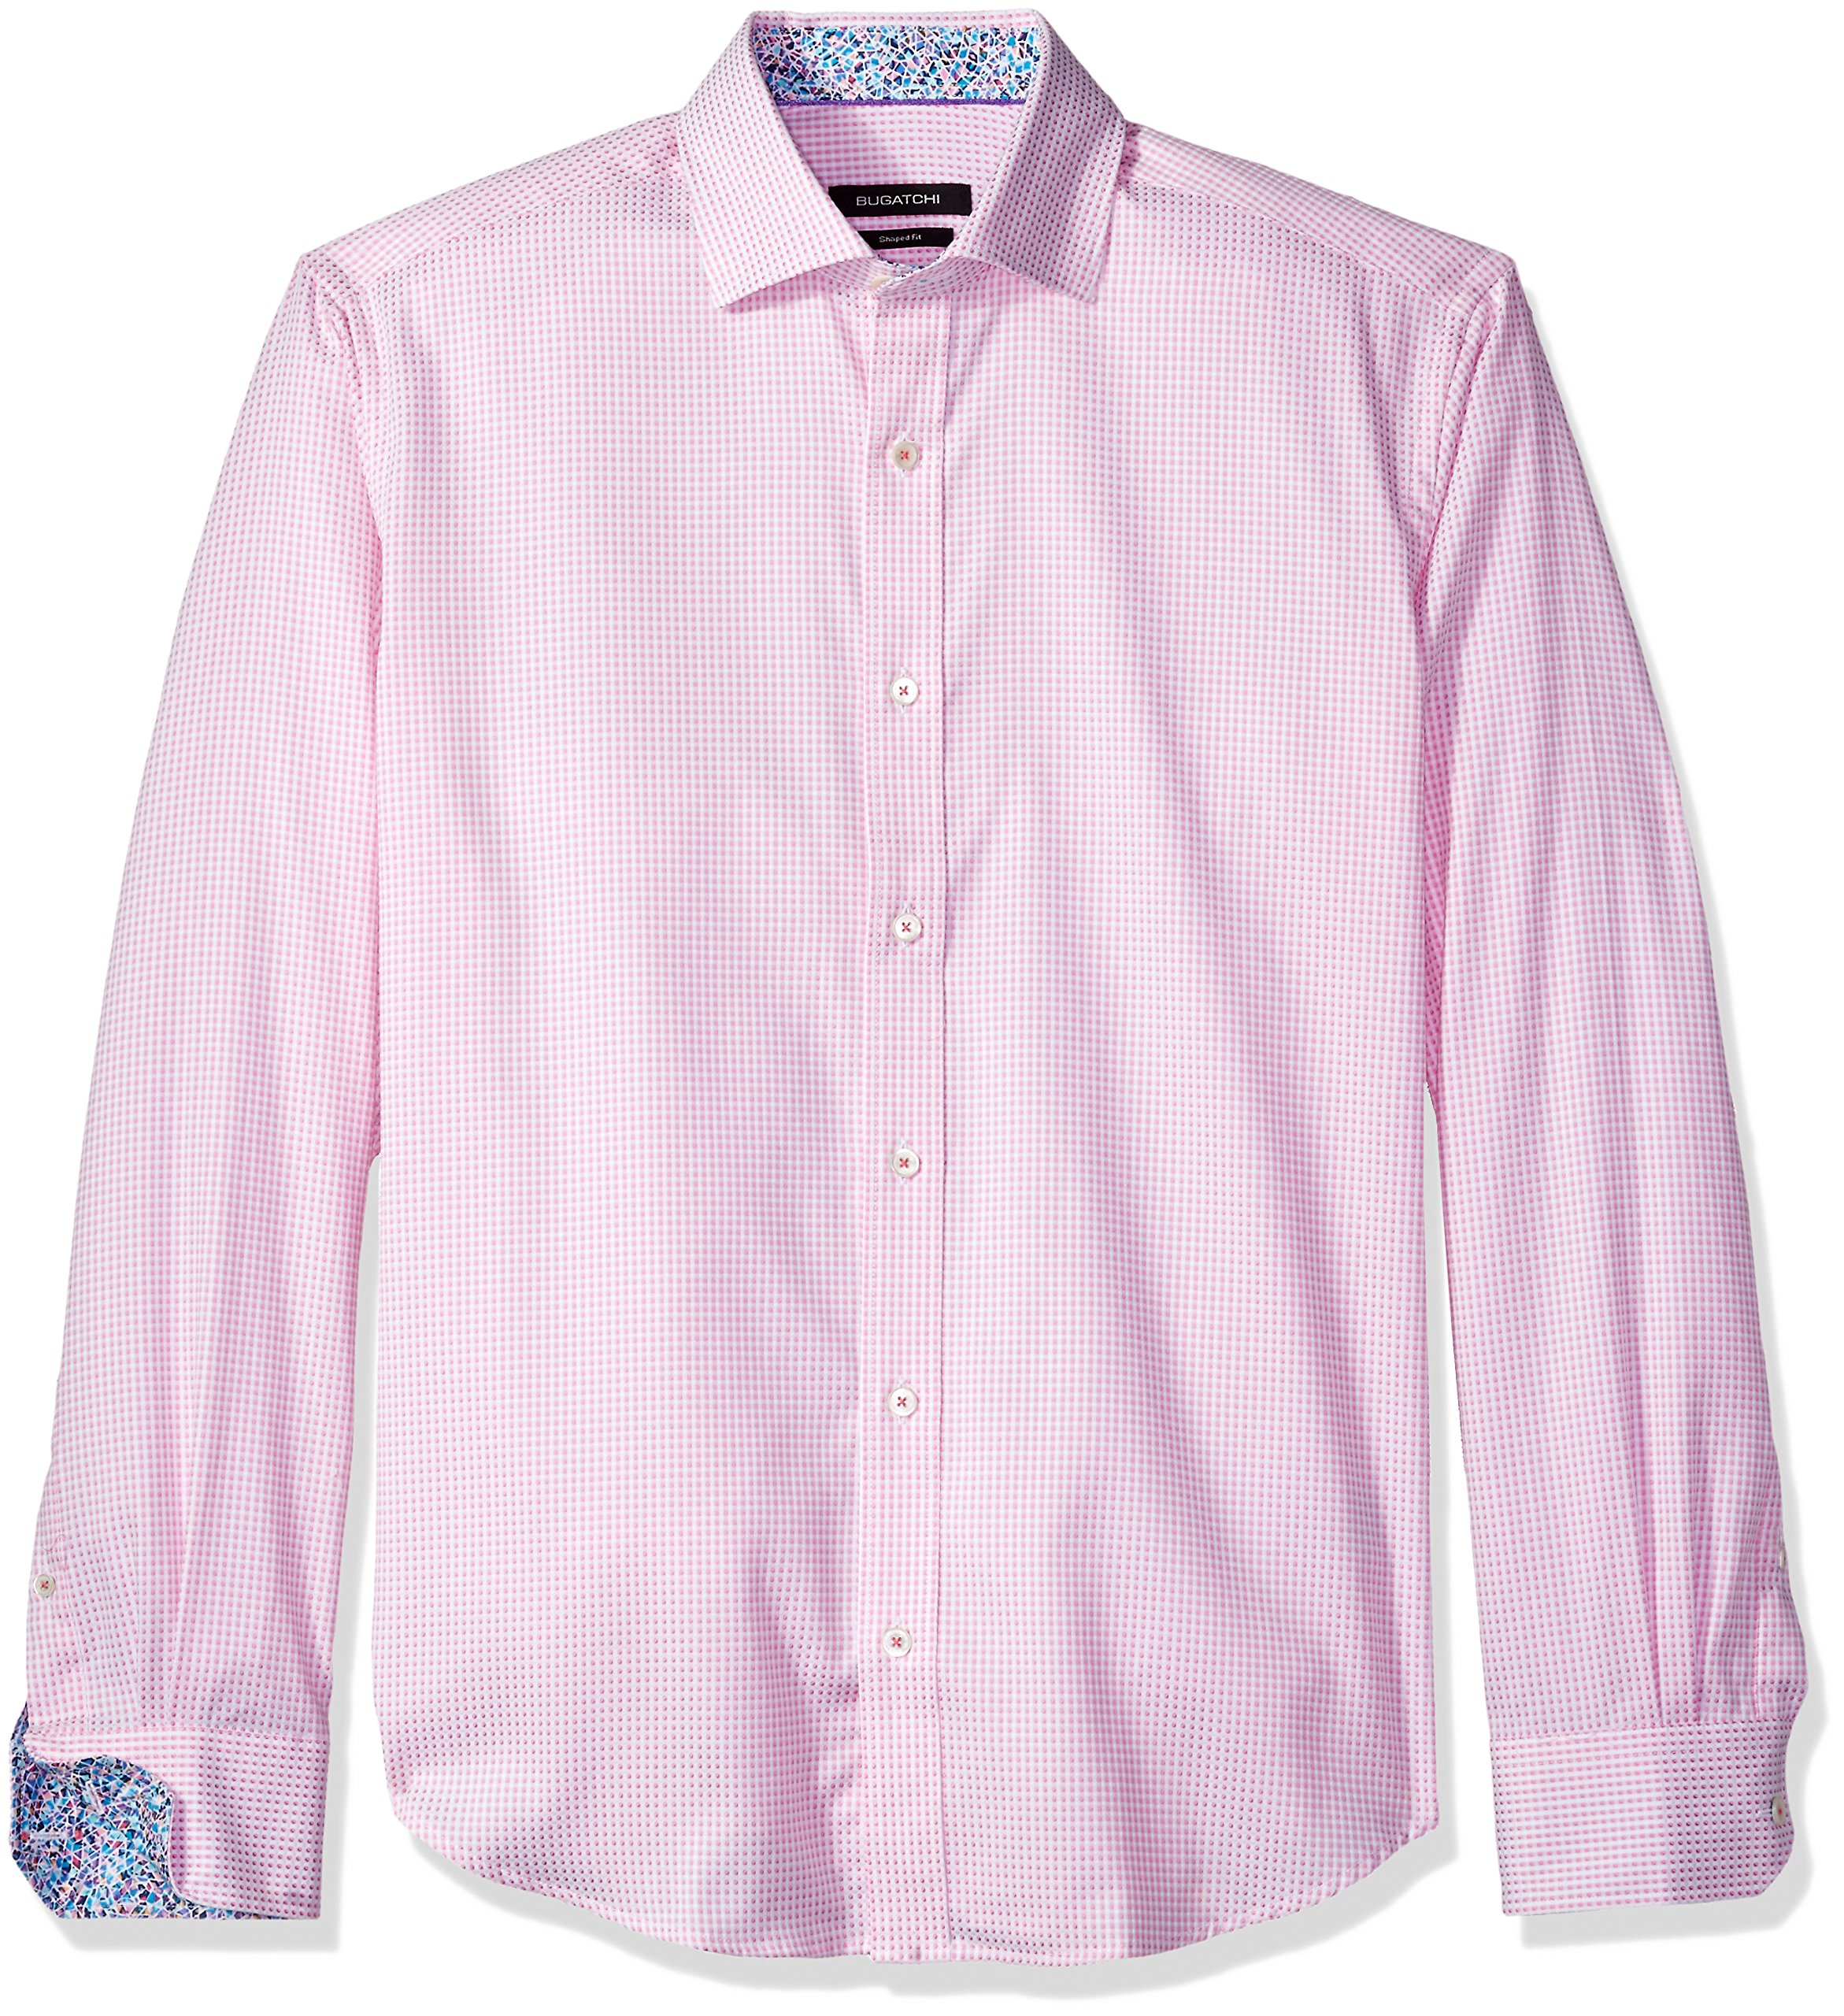 BUGATCHI Men's Cotton Shaped Fit Spread Collar Woven, Pink, X-Large